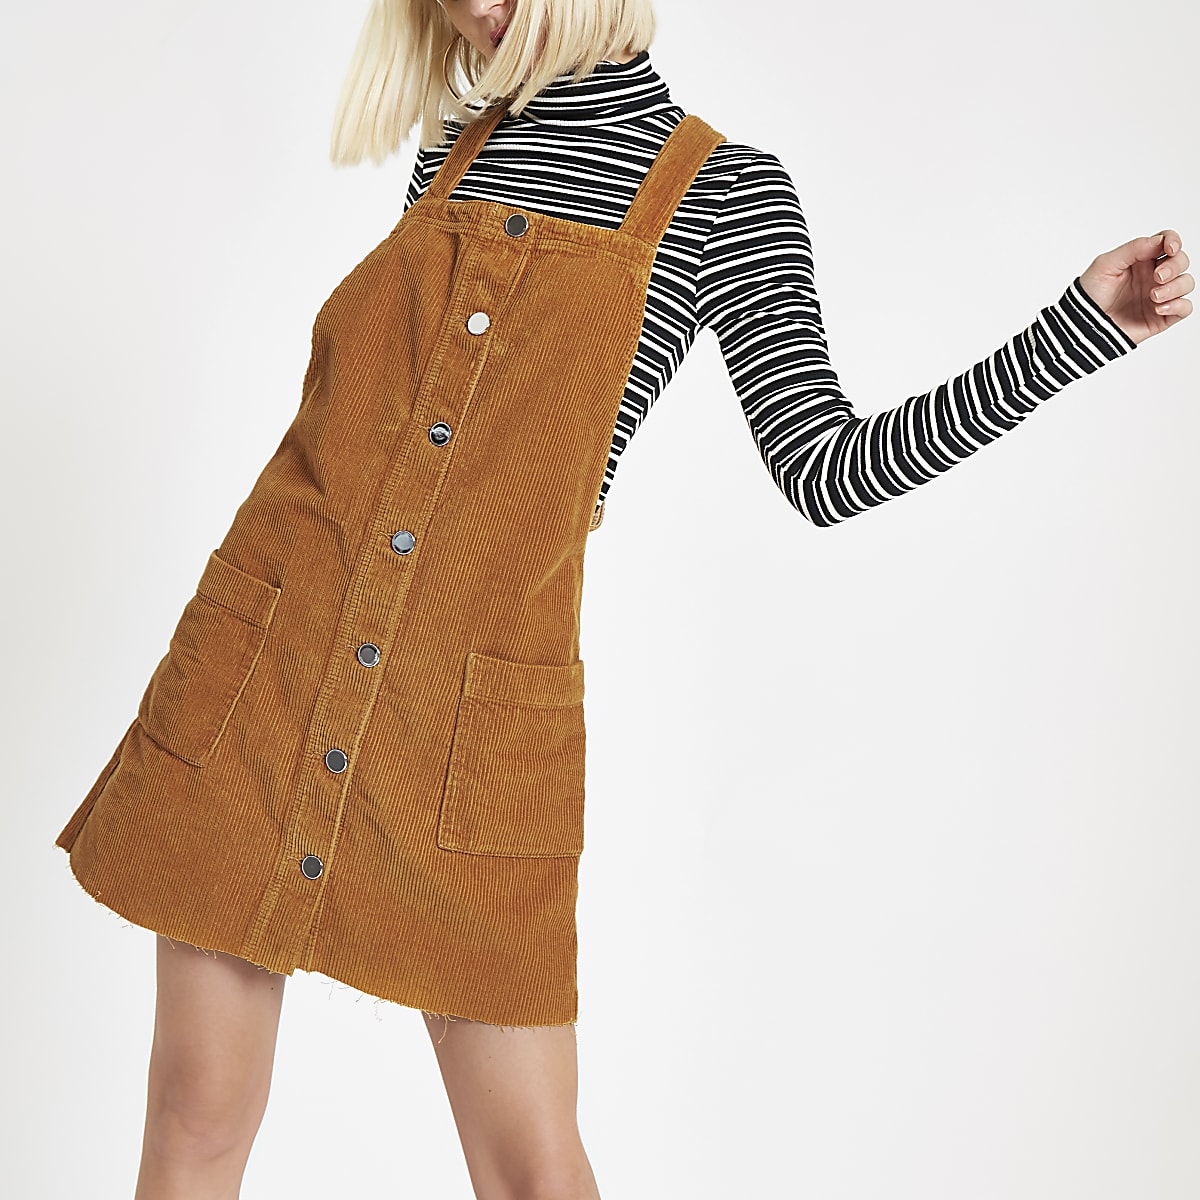 Brown cord overall dress